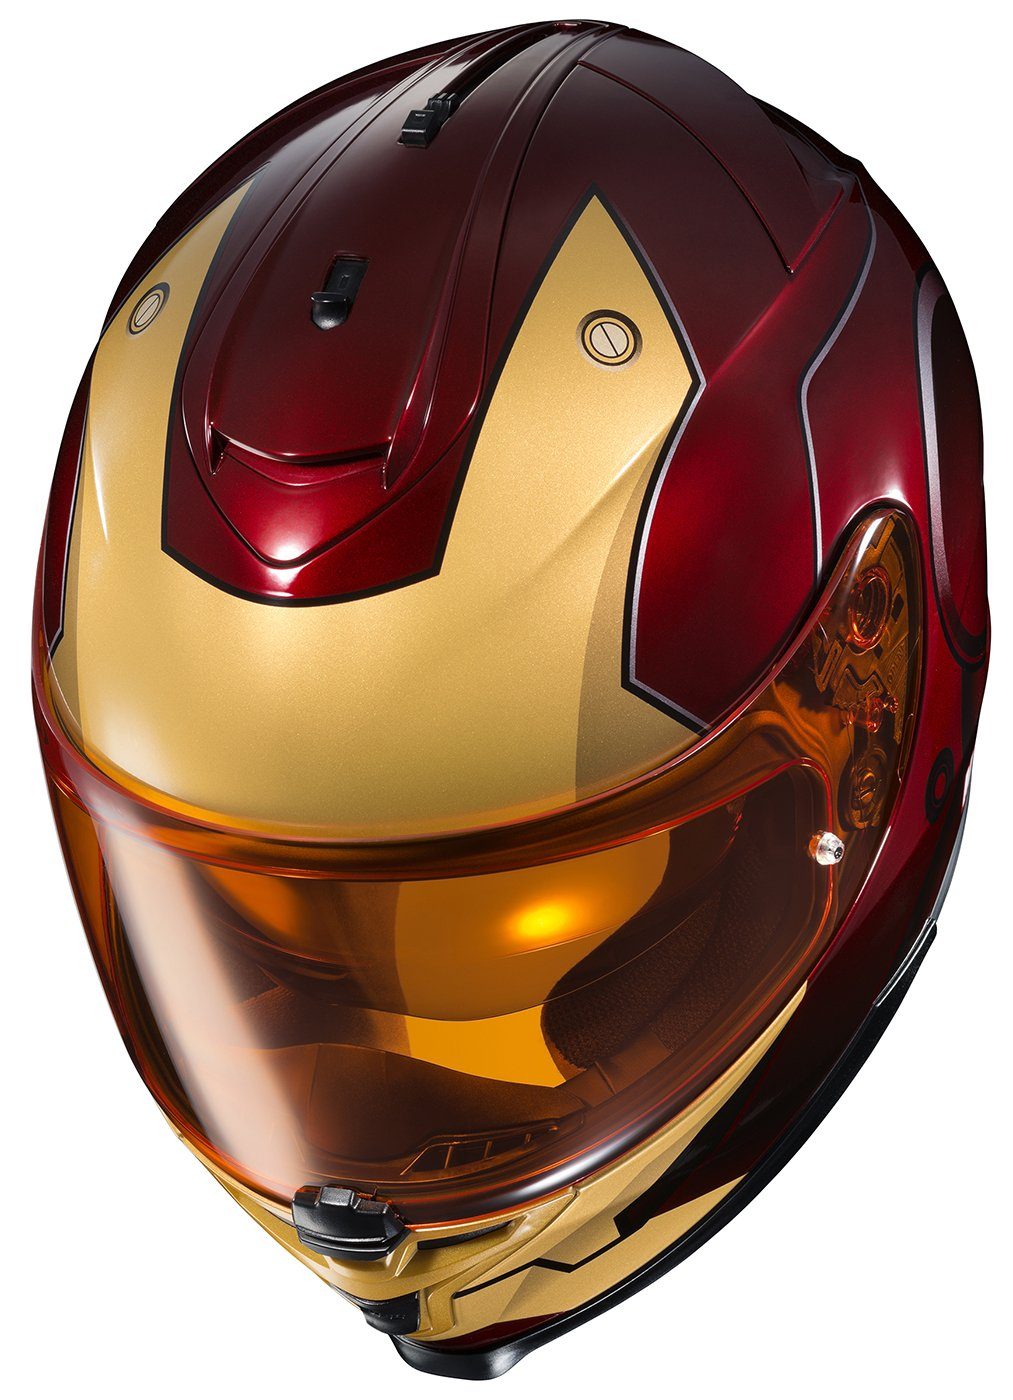 Amazon.es: HJC Helmets Marvel IS-17 Unisex-Adult Full Face IRONMAN Street Motorcycle Helmet (Red/Yellow, Large) by HJC Helmets